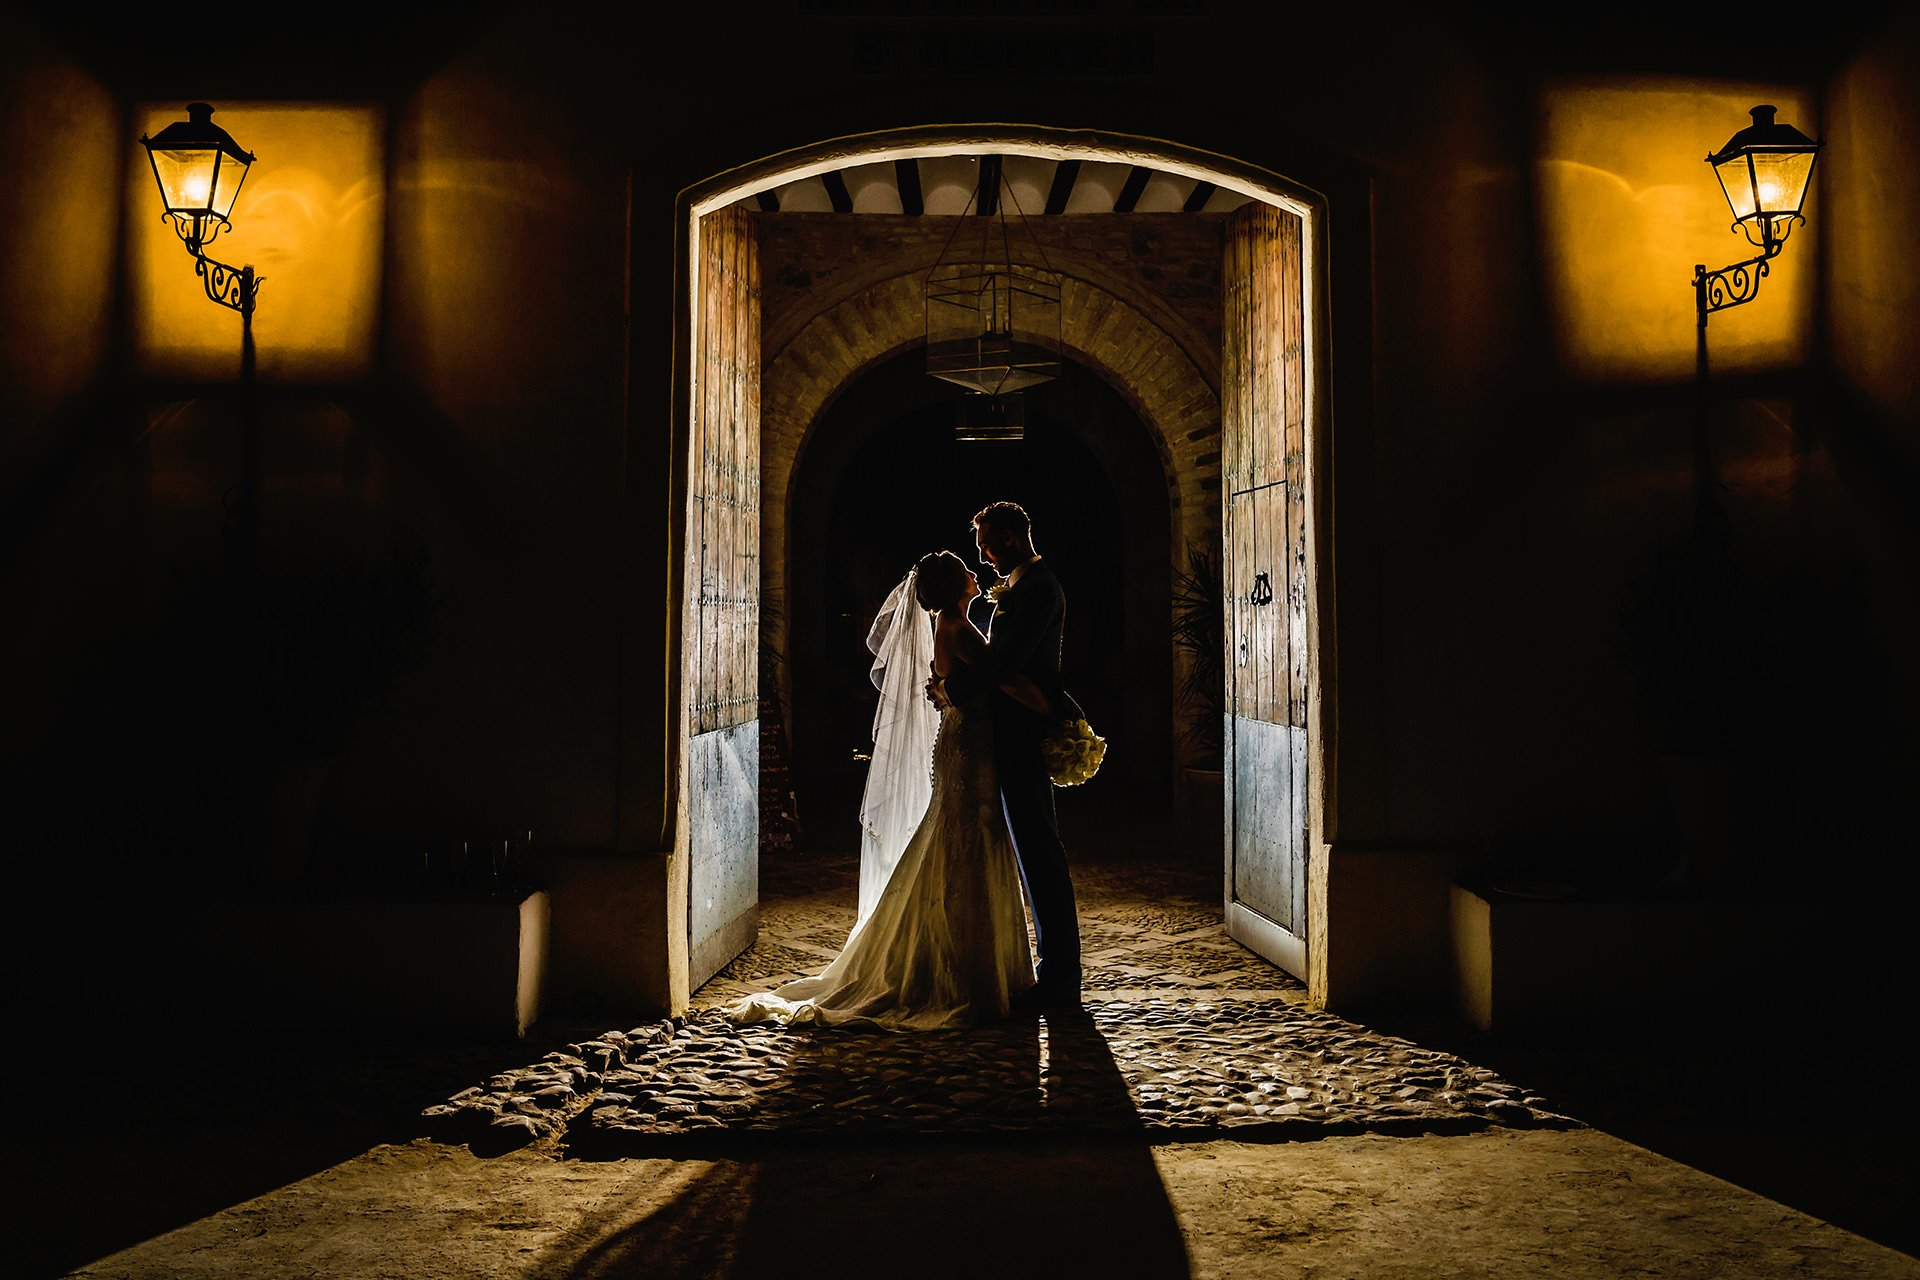 Hacienda san Rafael - Destination wedding photographer at the Hacienda san Rafael - wedding photographer Seville, Spain